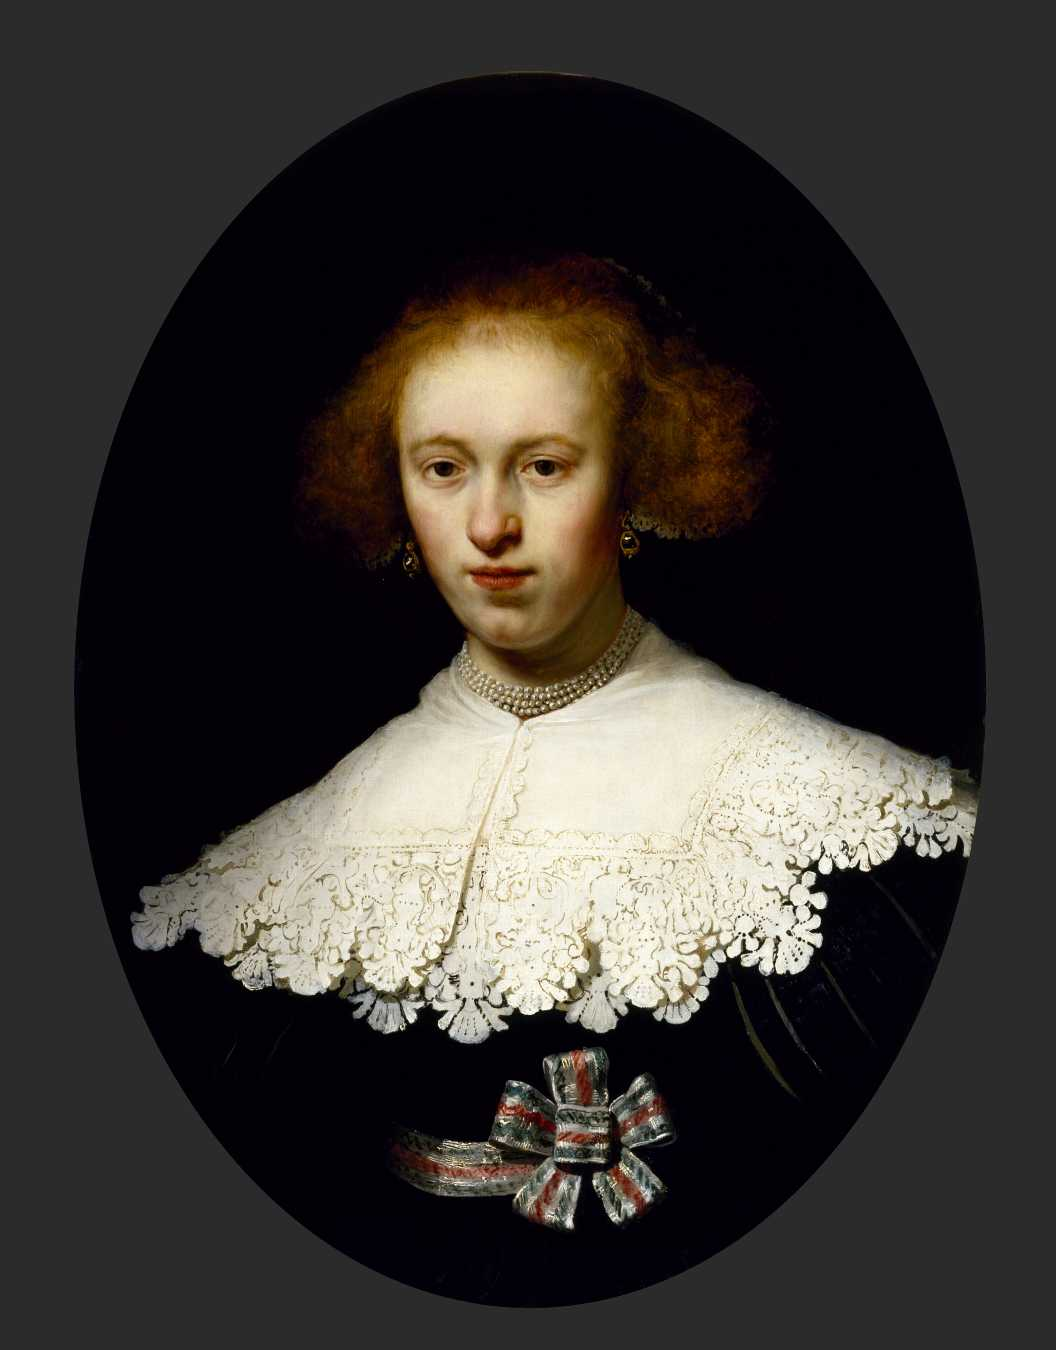 File:Portrait of a Young Woman by Rembrandt, 1633.jpg ...